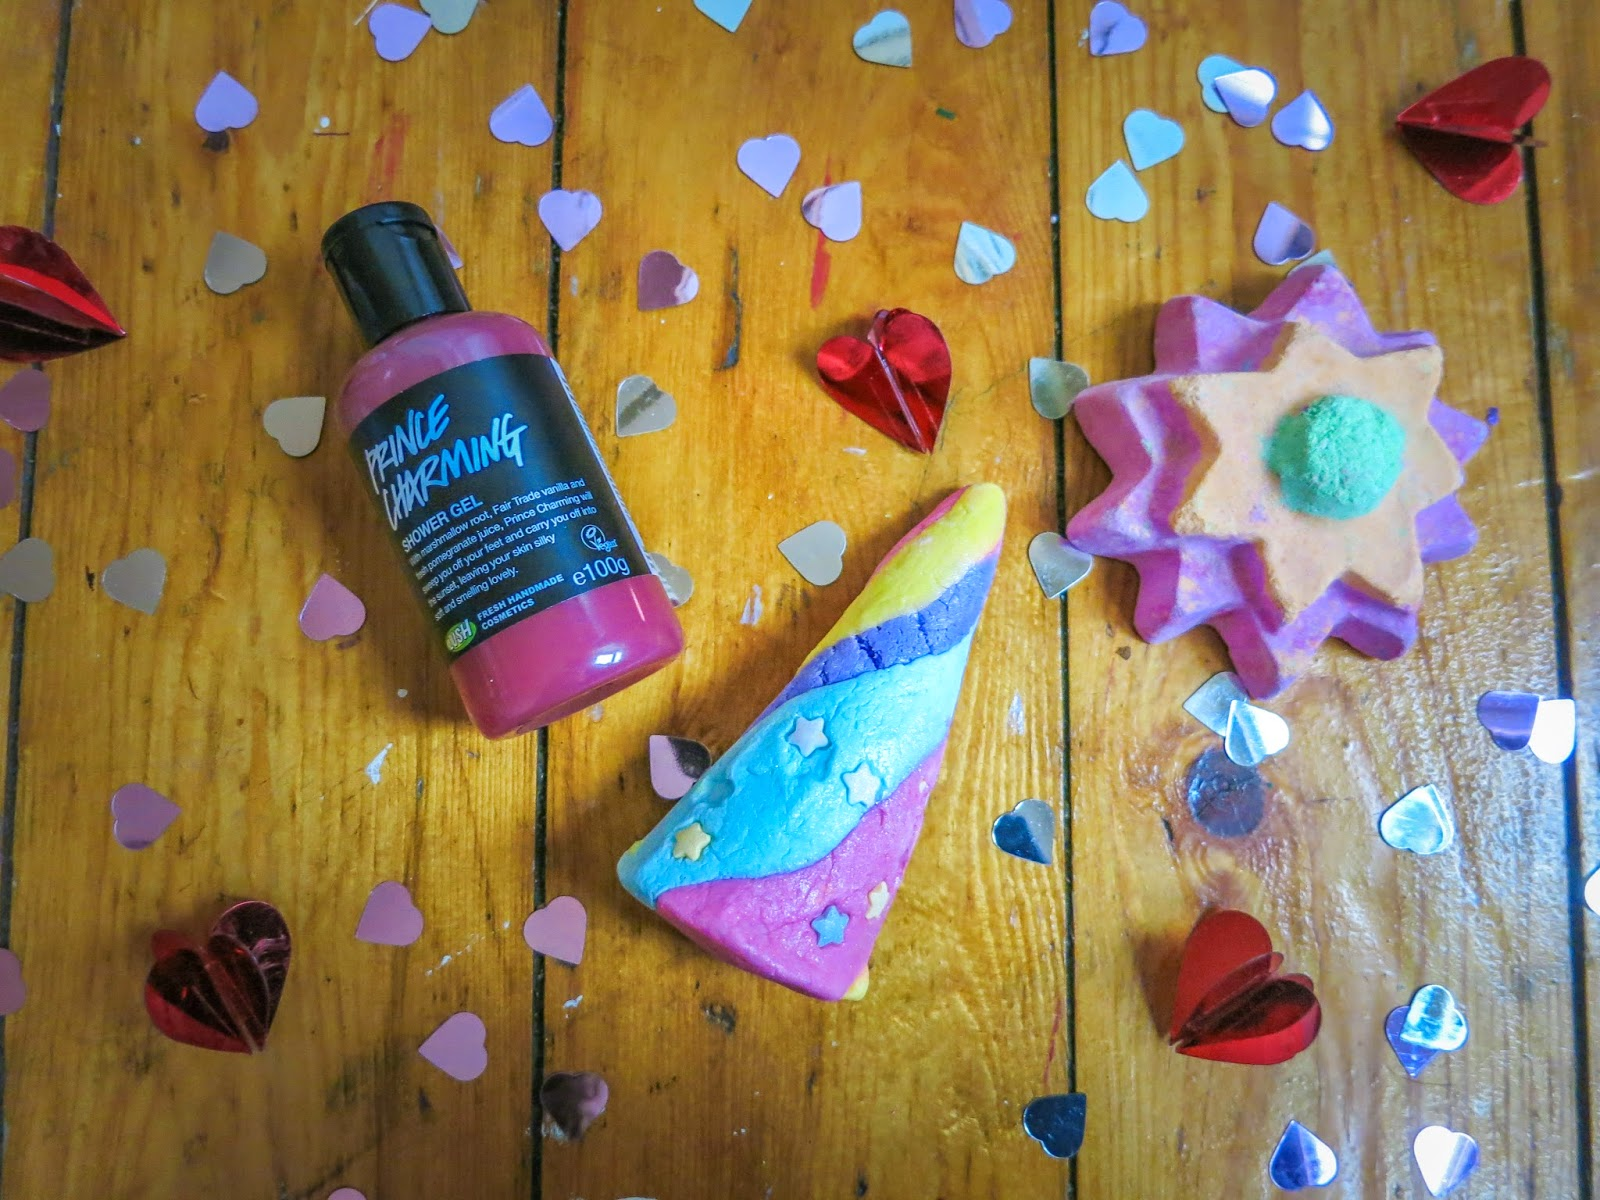 Valentines Day at Lush 2015